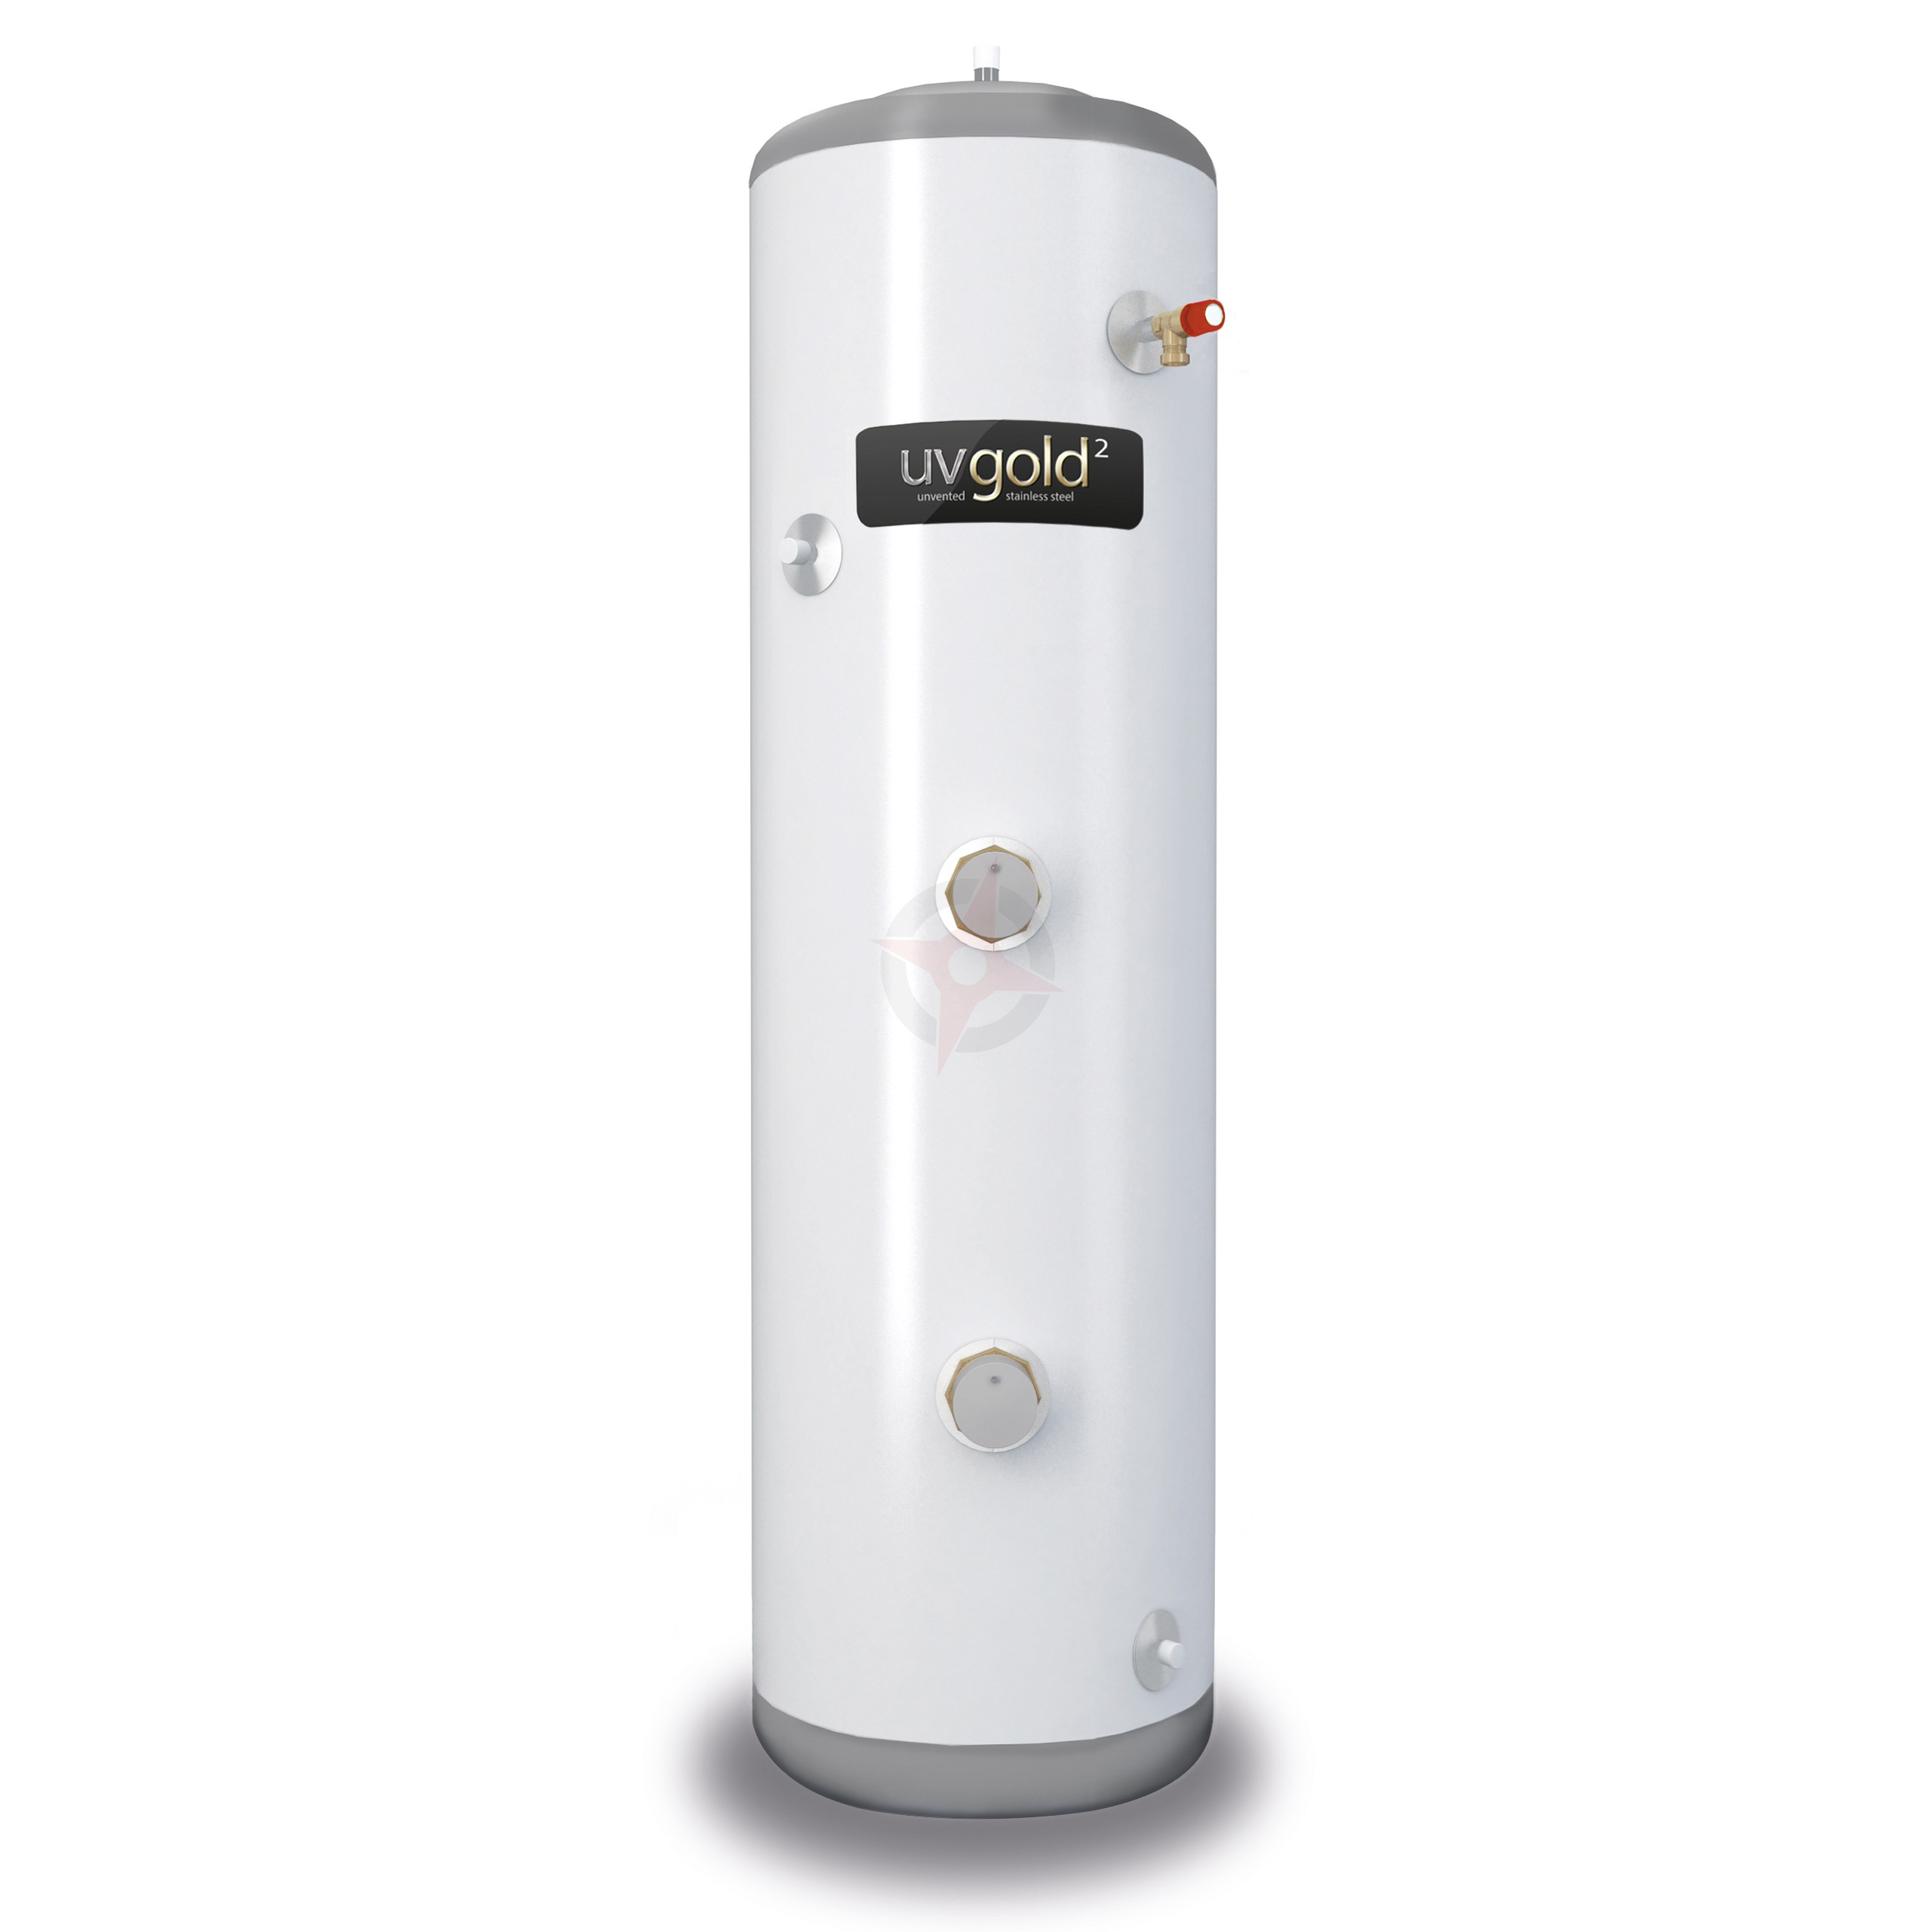 uvgold2 150L Slim-Fit Direct Unvented Hot Water Storage Cylinder & Kit